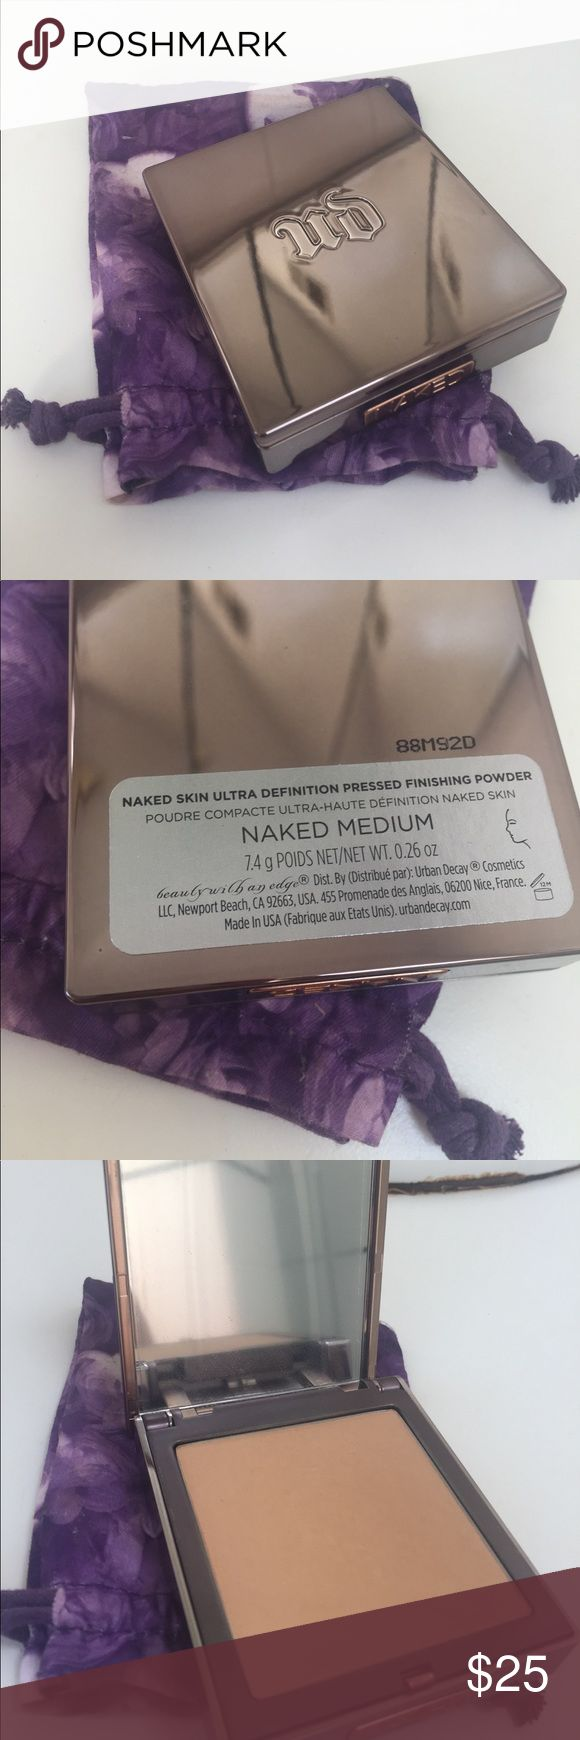 Naked skin pressed finishing powder Urban decay naked skin ultra definition pressed finishing powder in the color naked medium. Only used less than a handful of times. Sponge never used. Urban Decay Makeup Face Powder